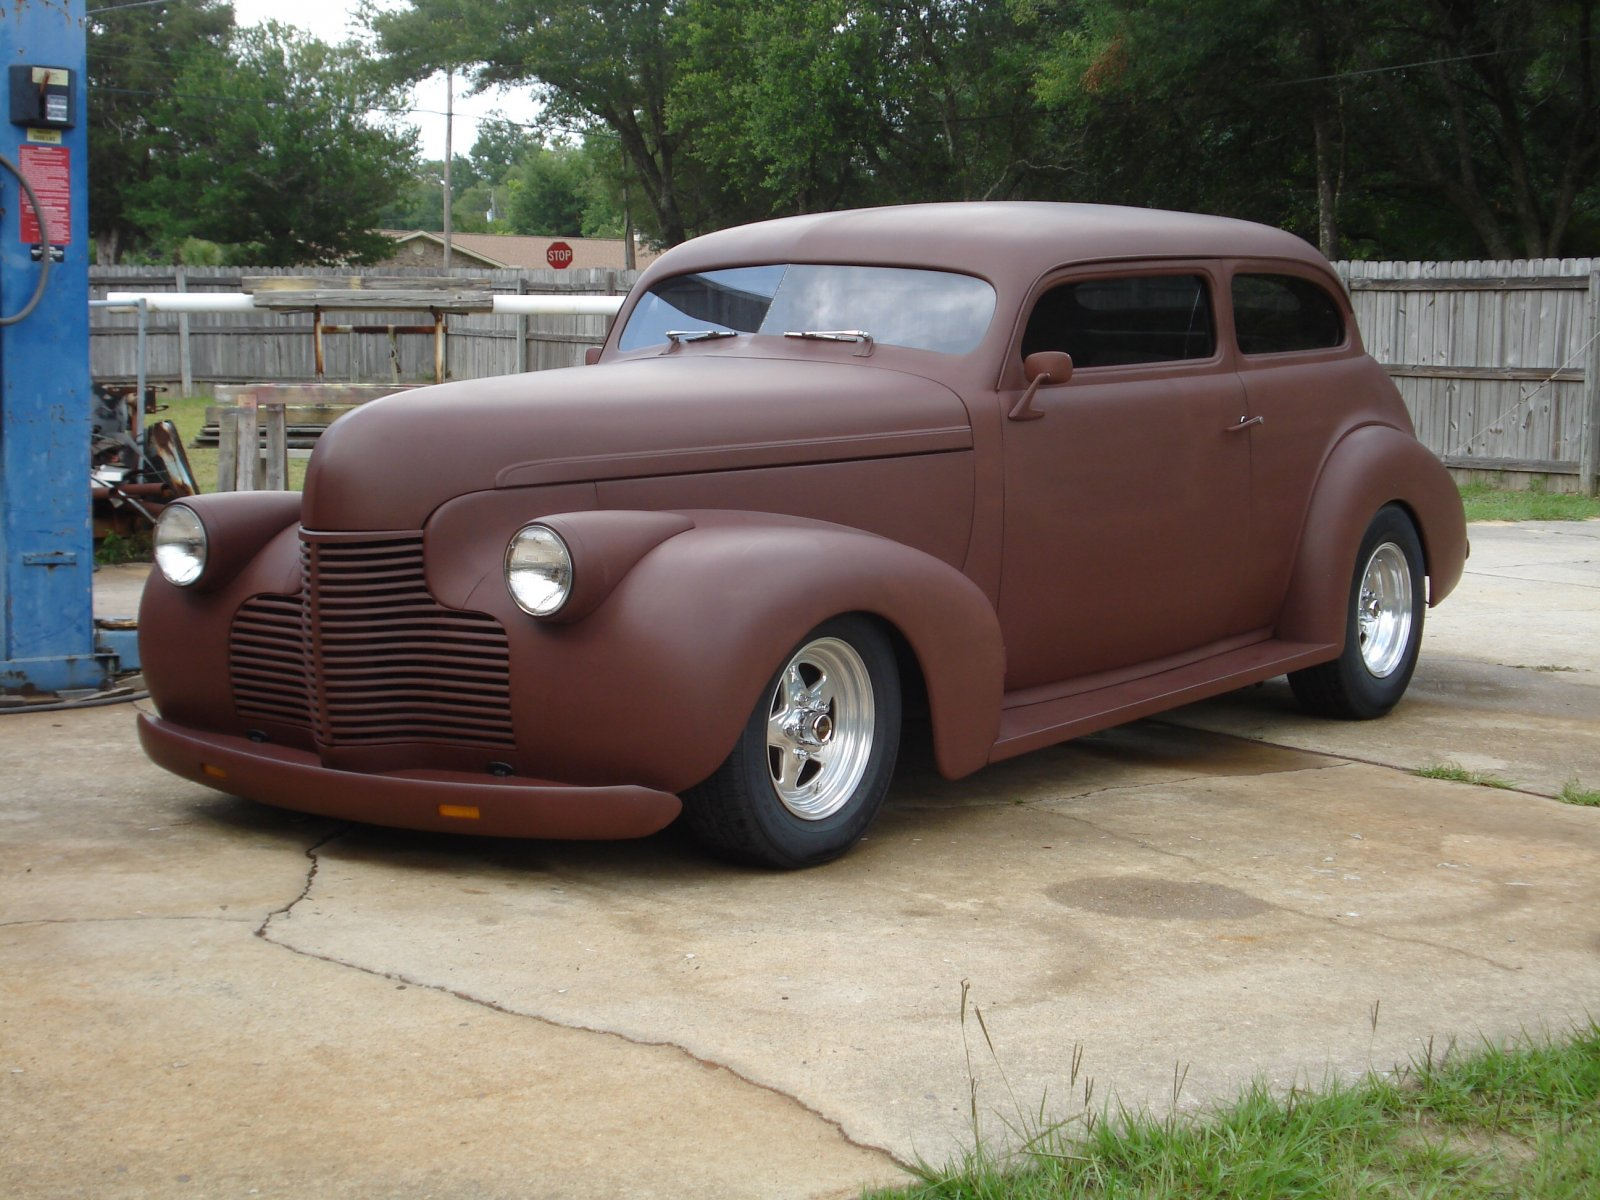 1940 Chevrolet Sedan 1949 Chevy Delivery 4 Sal1940